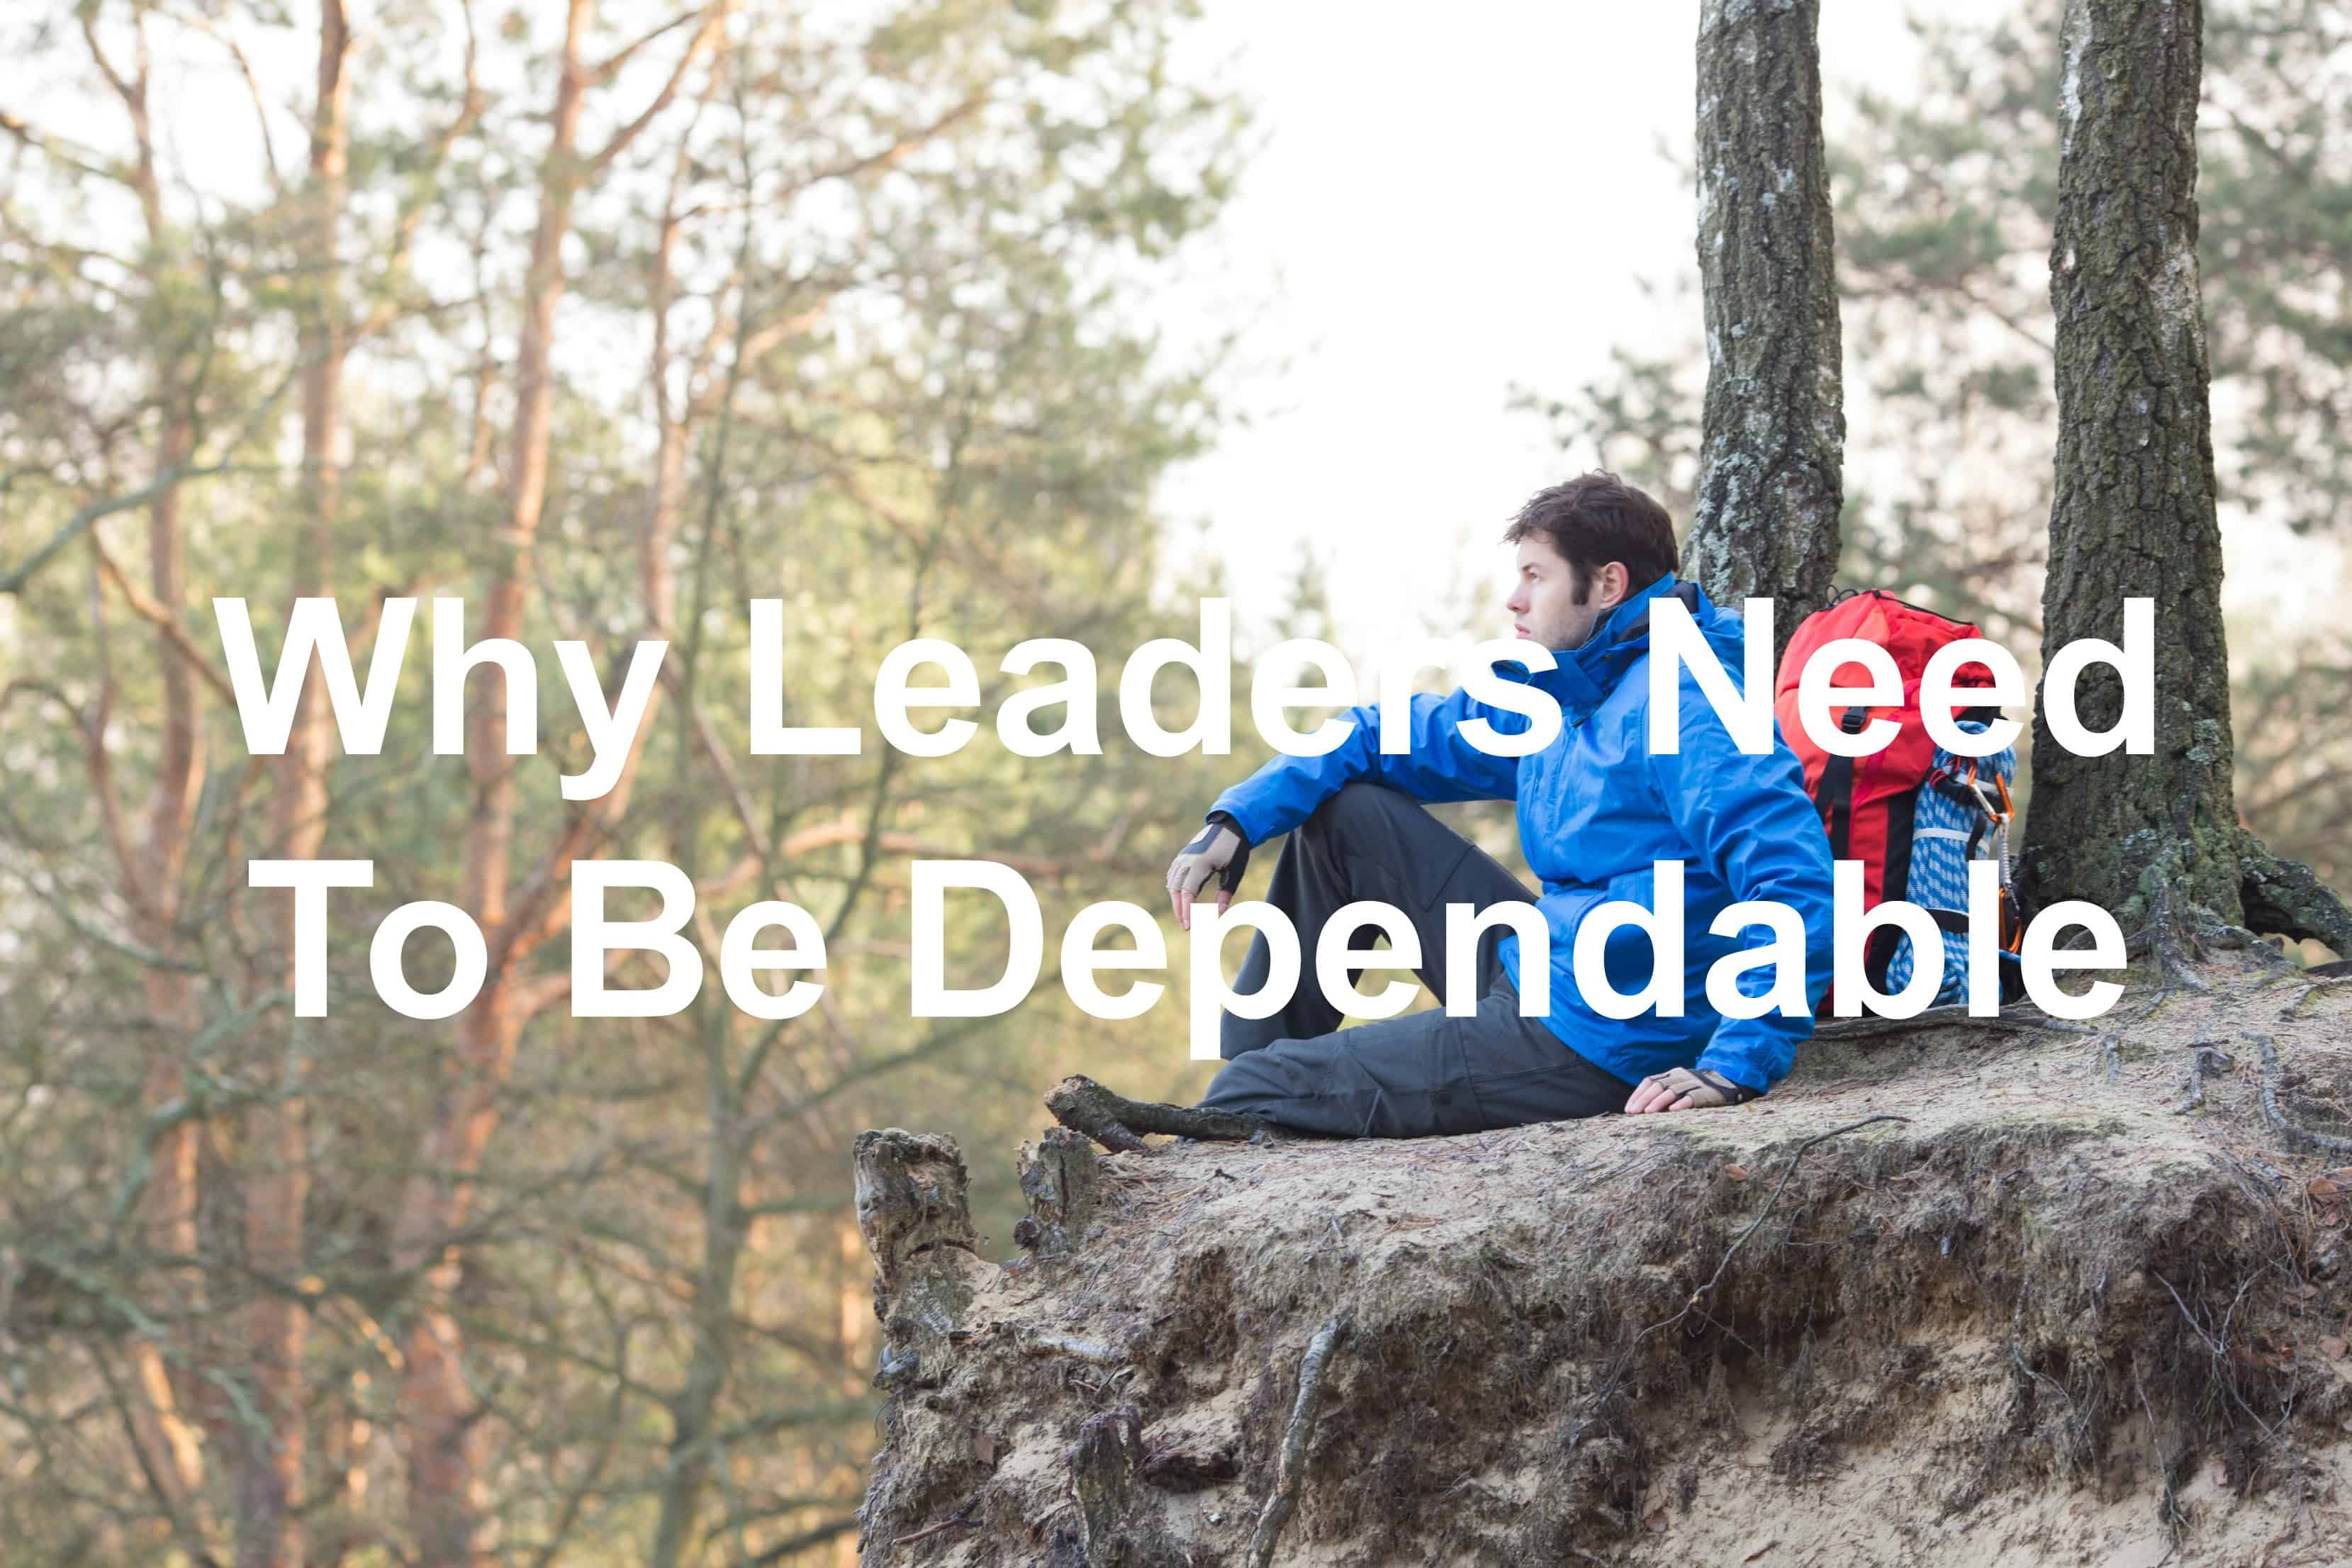 Are you a dependable leader?